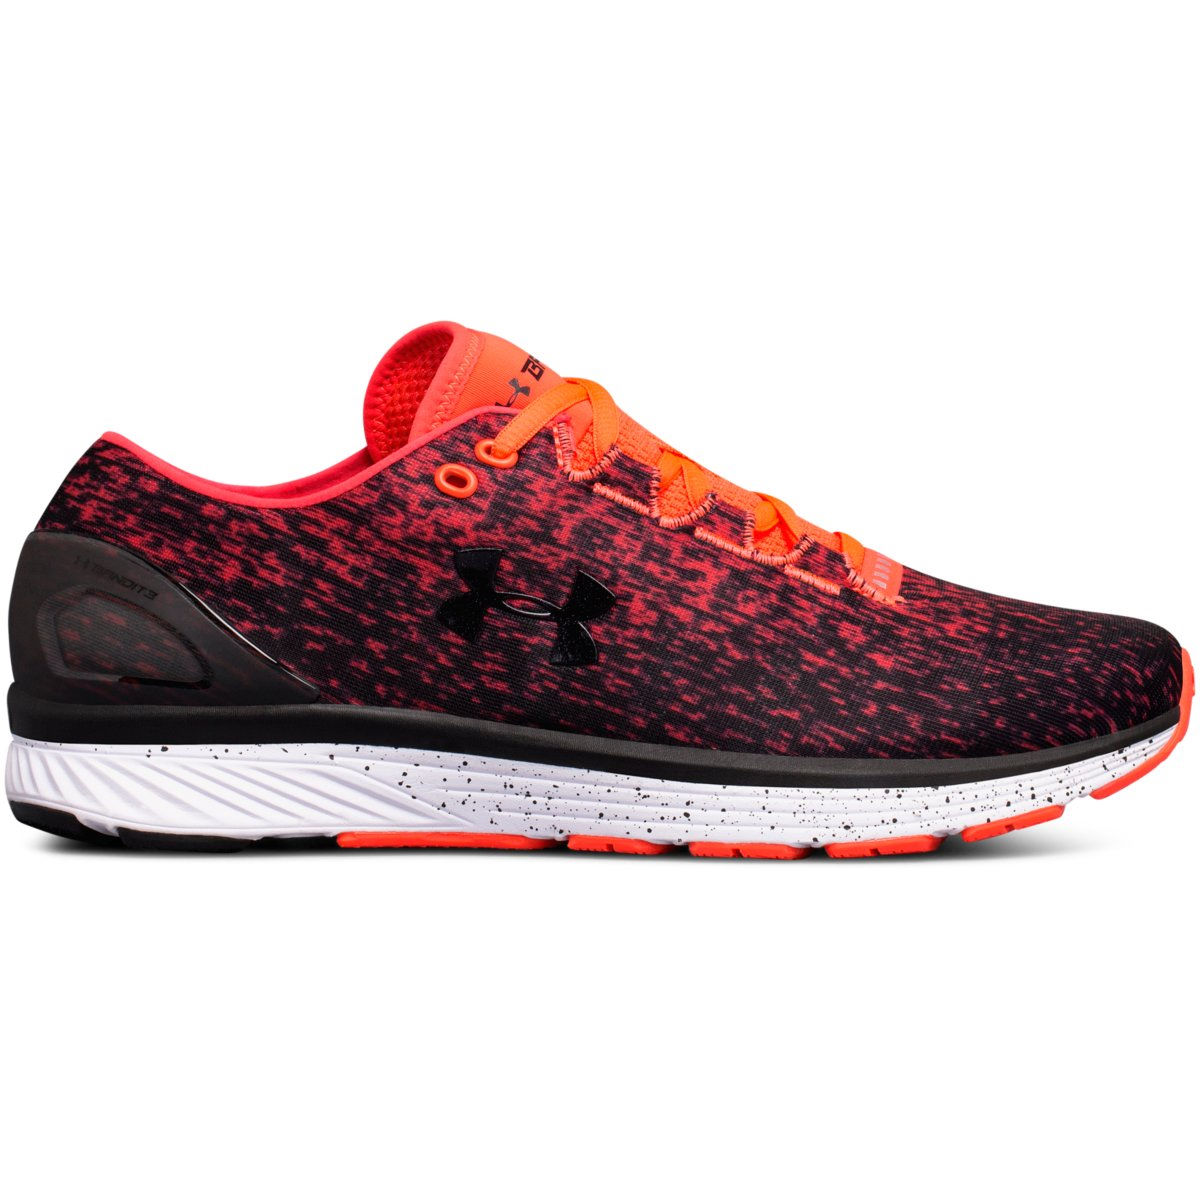 Under Armour Charged Bandit 3 Ombre Running Shoe - 8.5